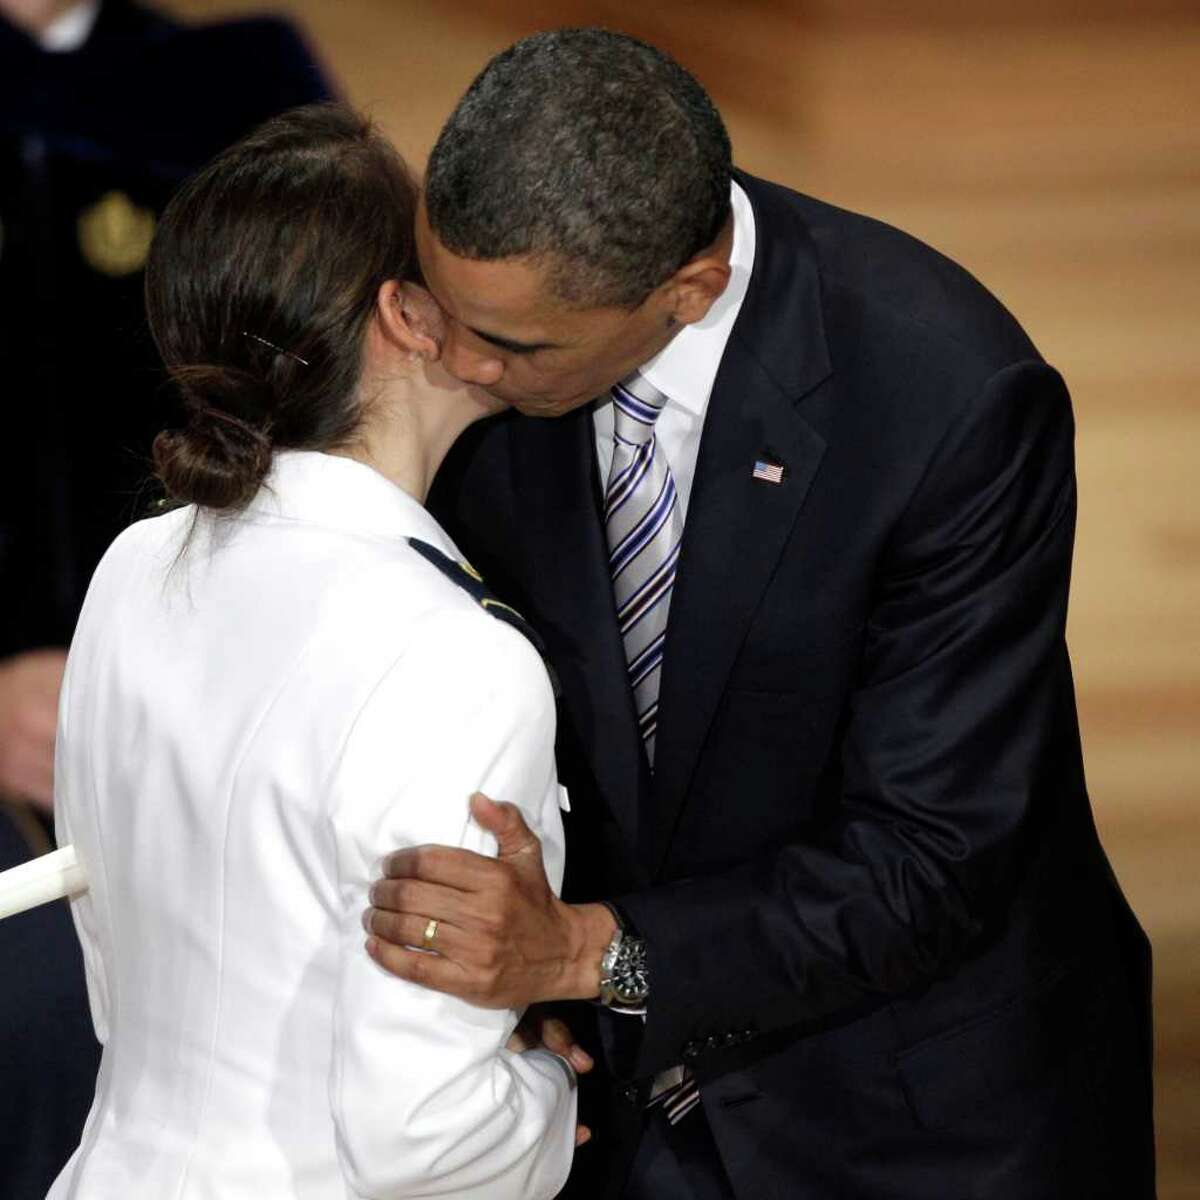 President Barack Obama kisses Ensign Jennifer Proctor after he presented her with her commission at the 130th Coast Guard Academy Commencement in New London, Conn., Wednesday, May 18, 2011. Proctor and Obama graduated from the same Hawaiian high school. (AP Photo/Stephan Savoia)